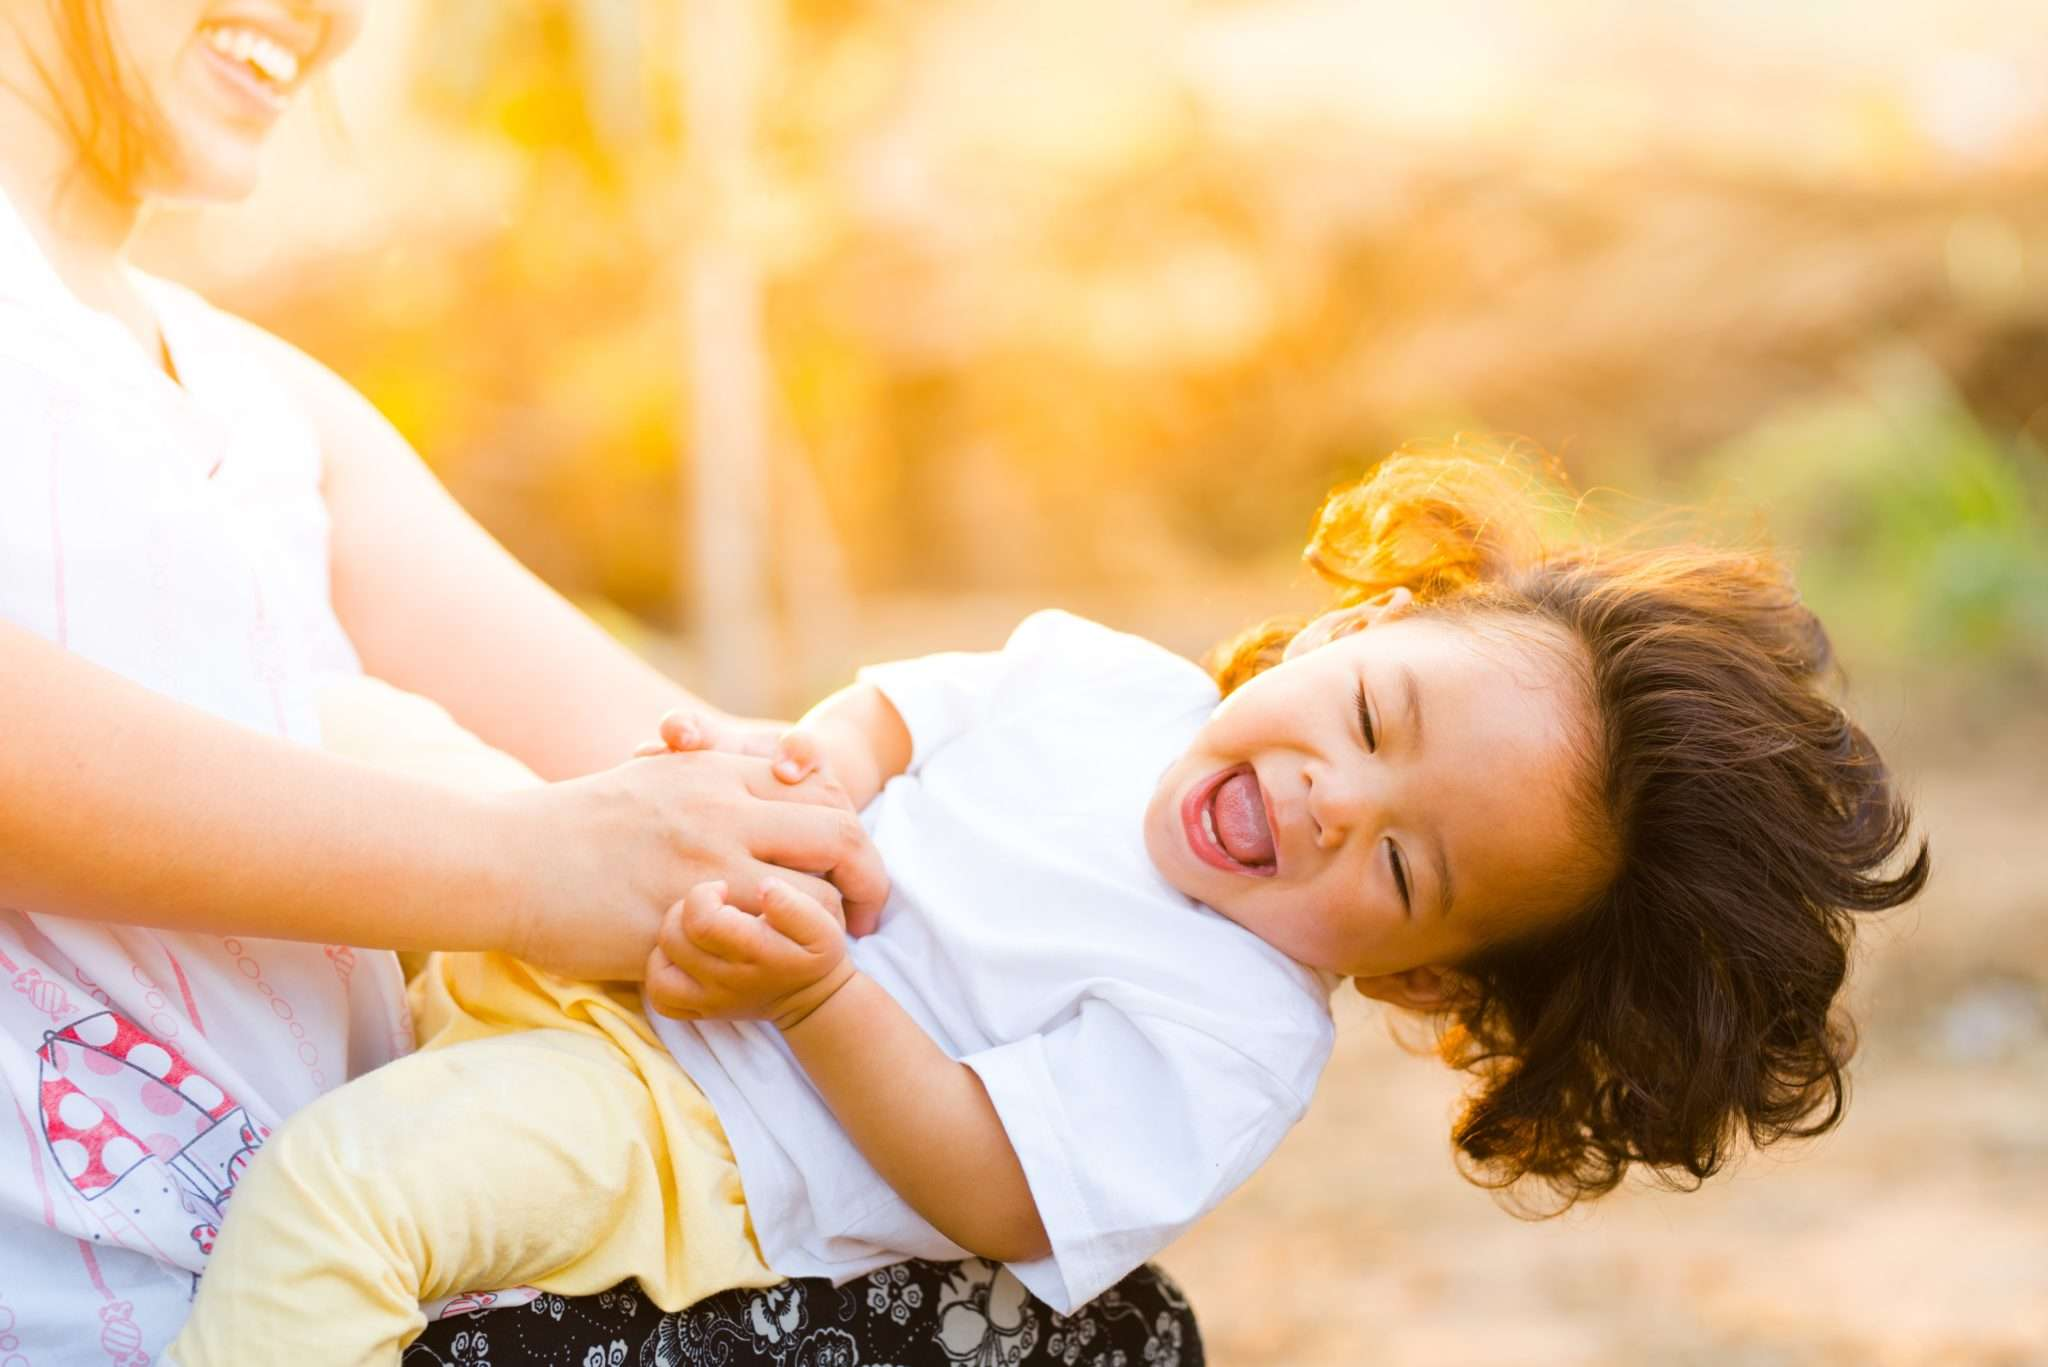 Health insurance for mum and daughter